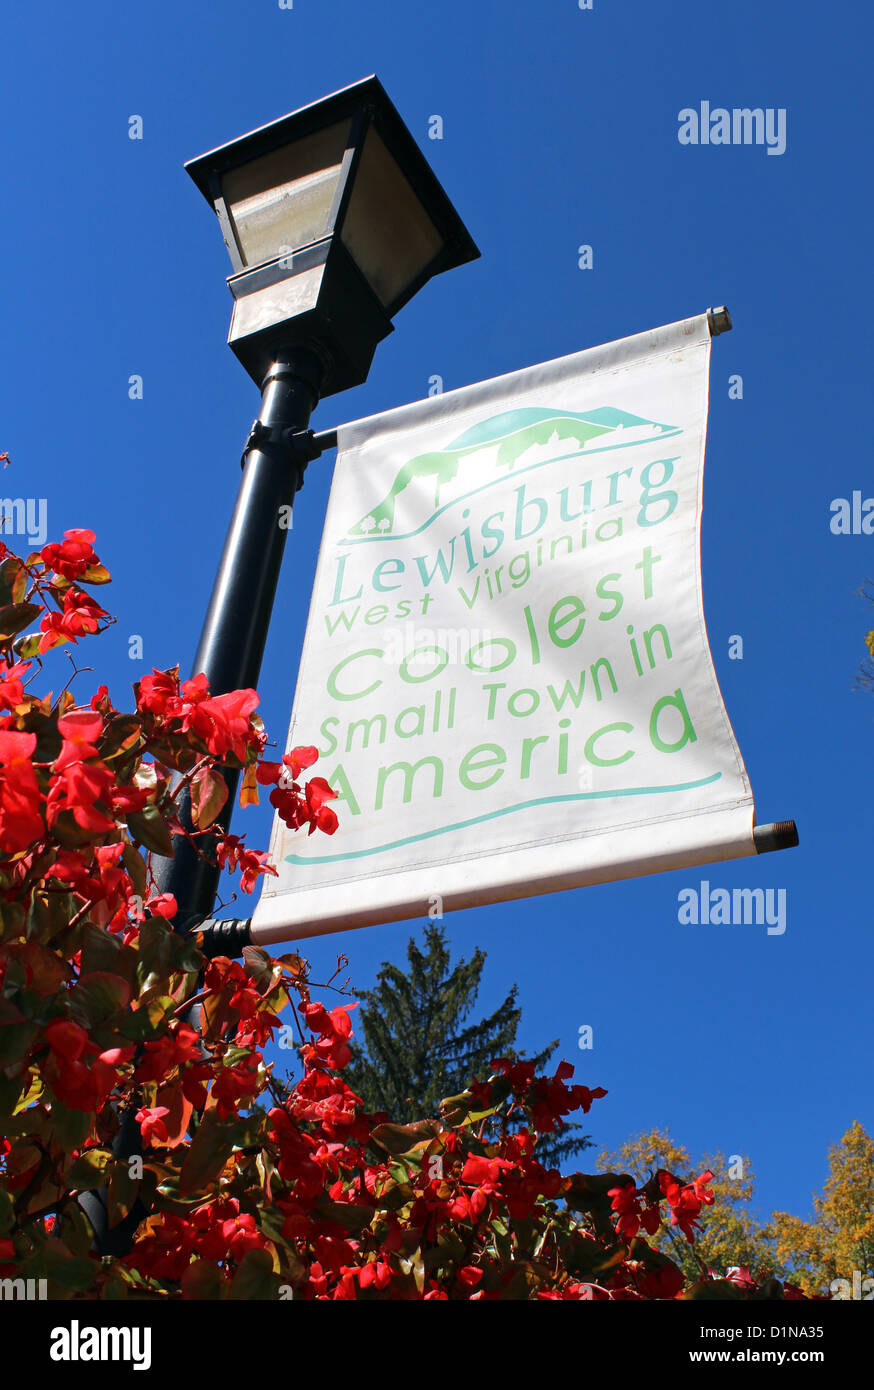 Lewisburg, coolest small town in America sign, West Virginia, America, USA - Stock Image